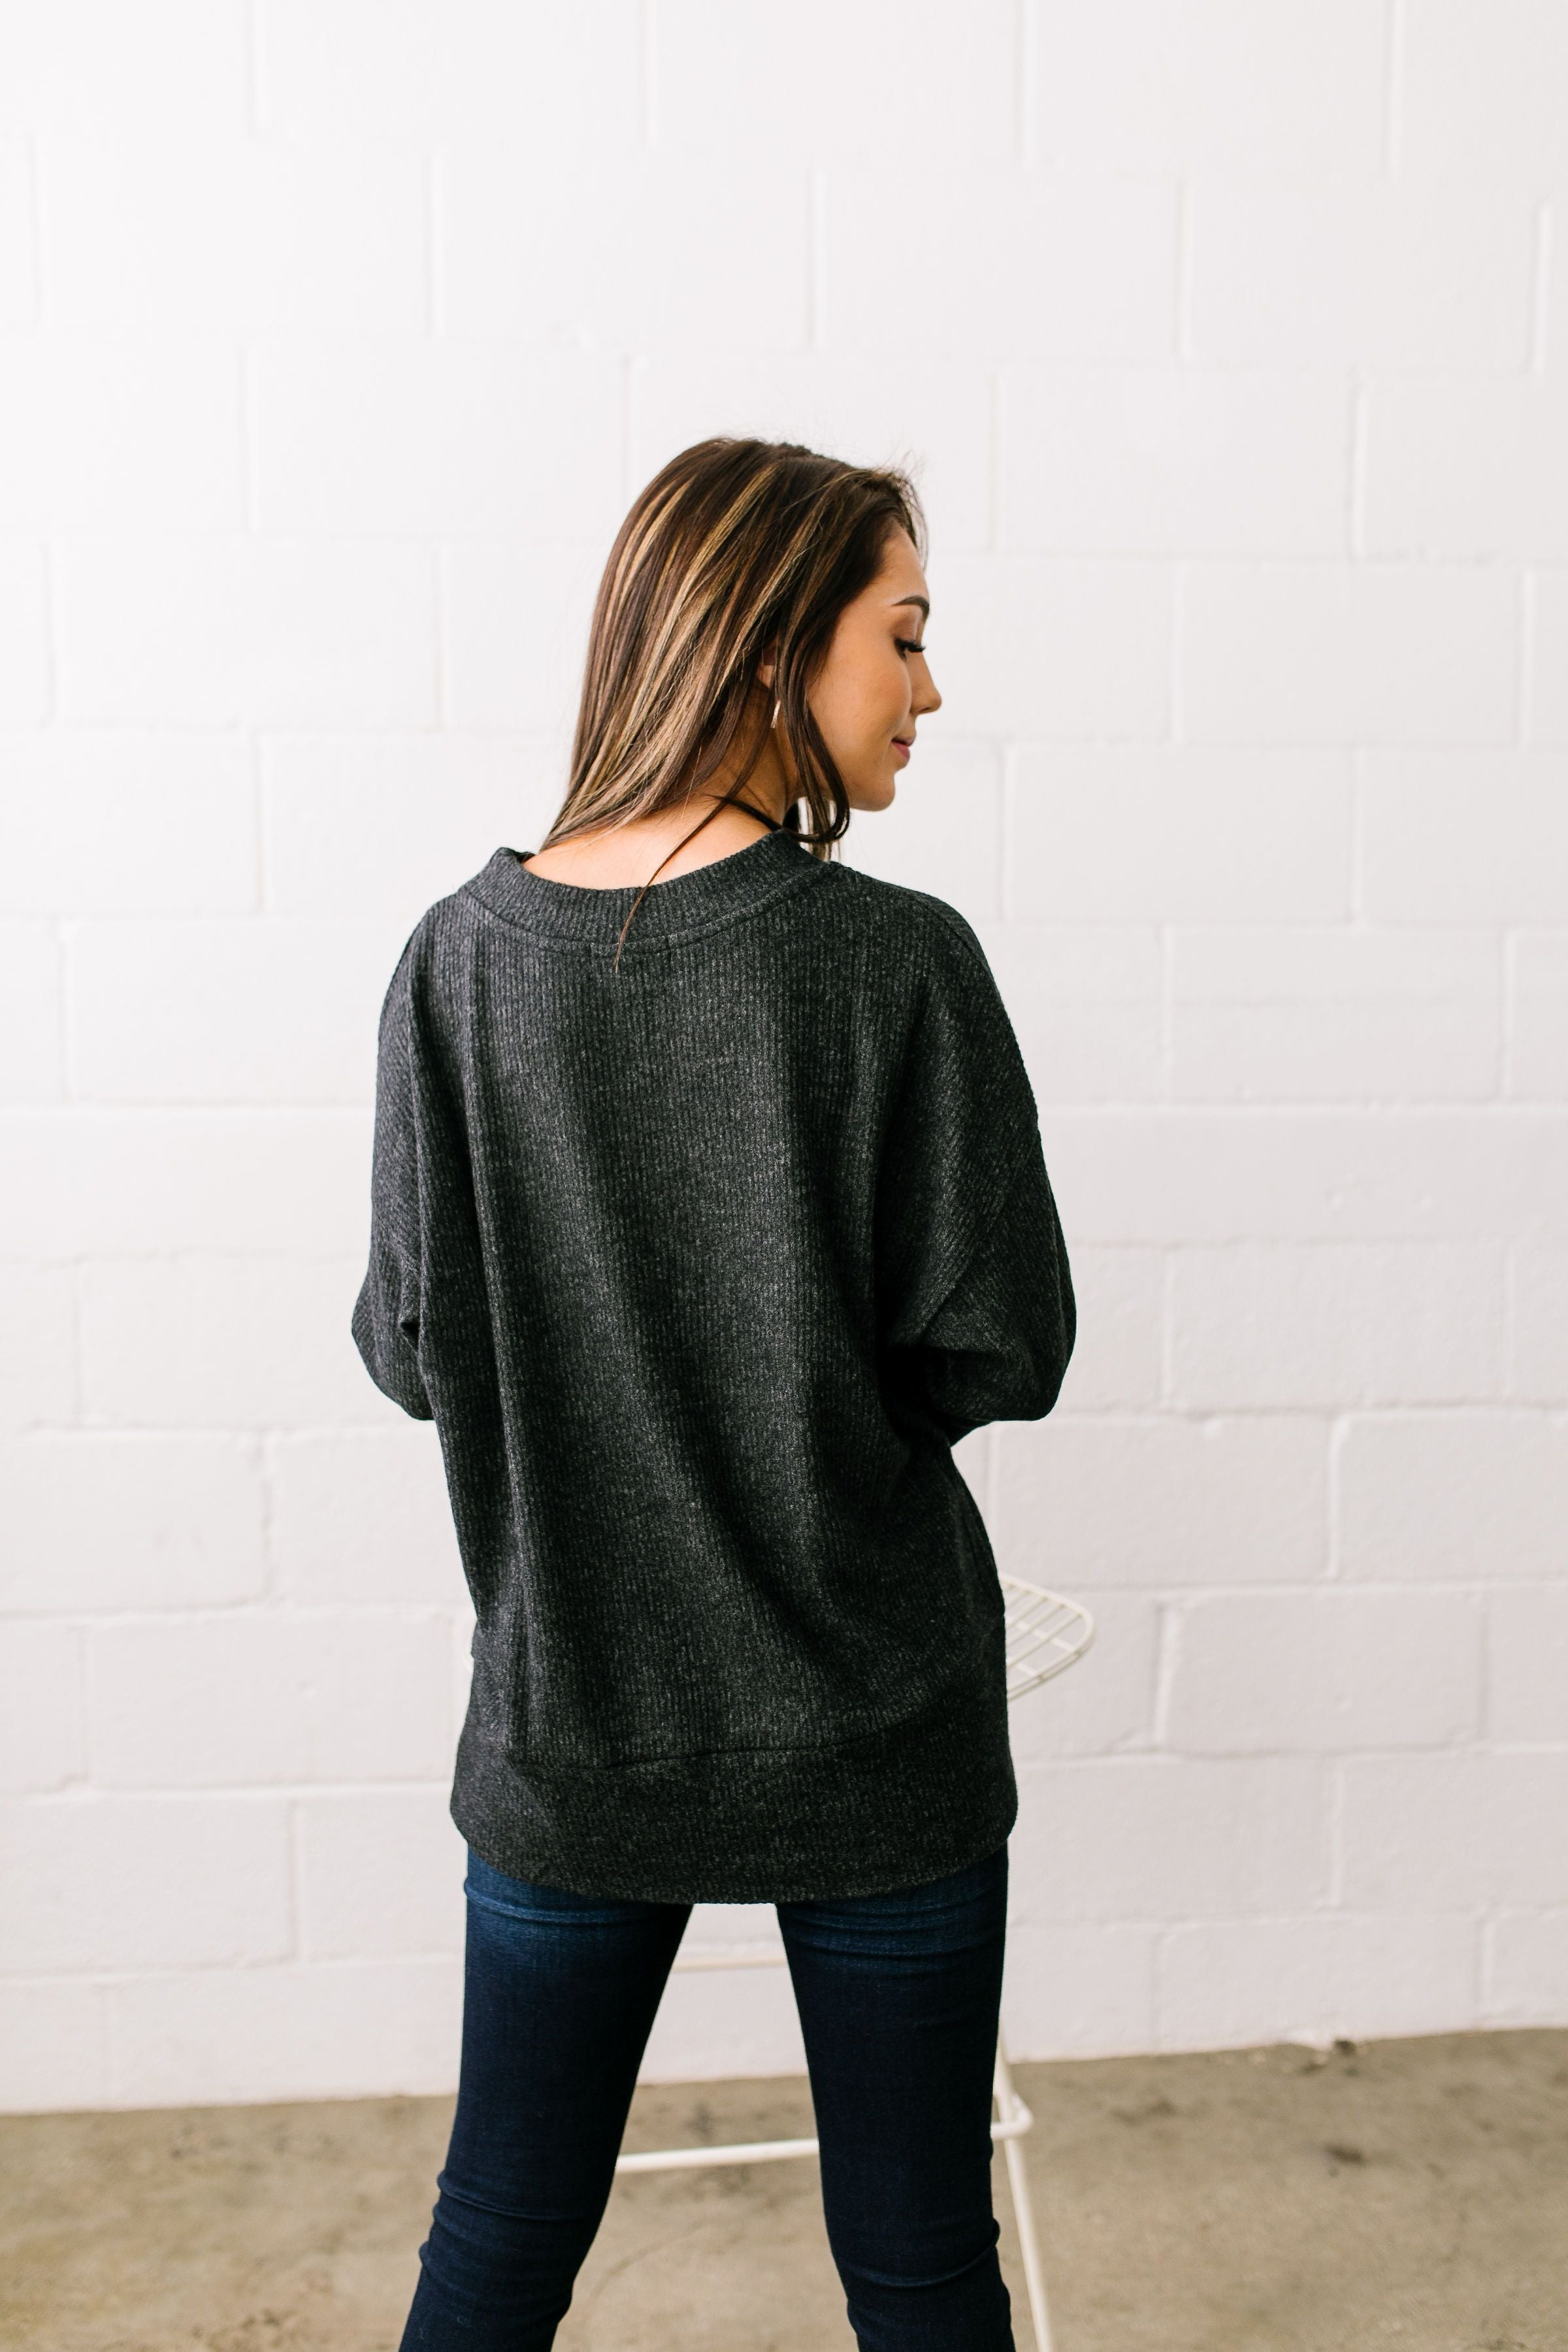 Soft Hearted Fuzzy Three-Quarter Sleeved Top In Charcoal - ALL SALES FINAL